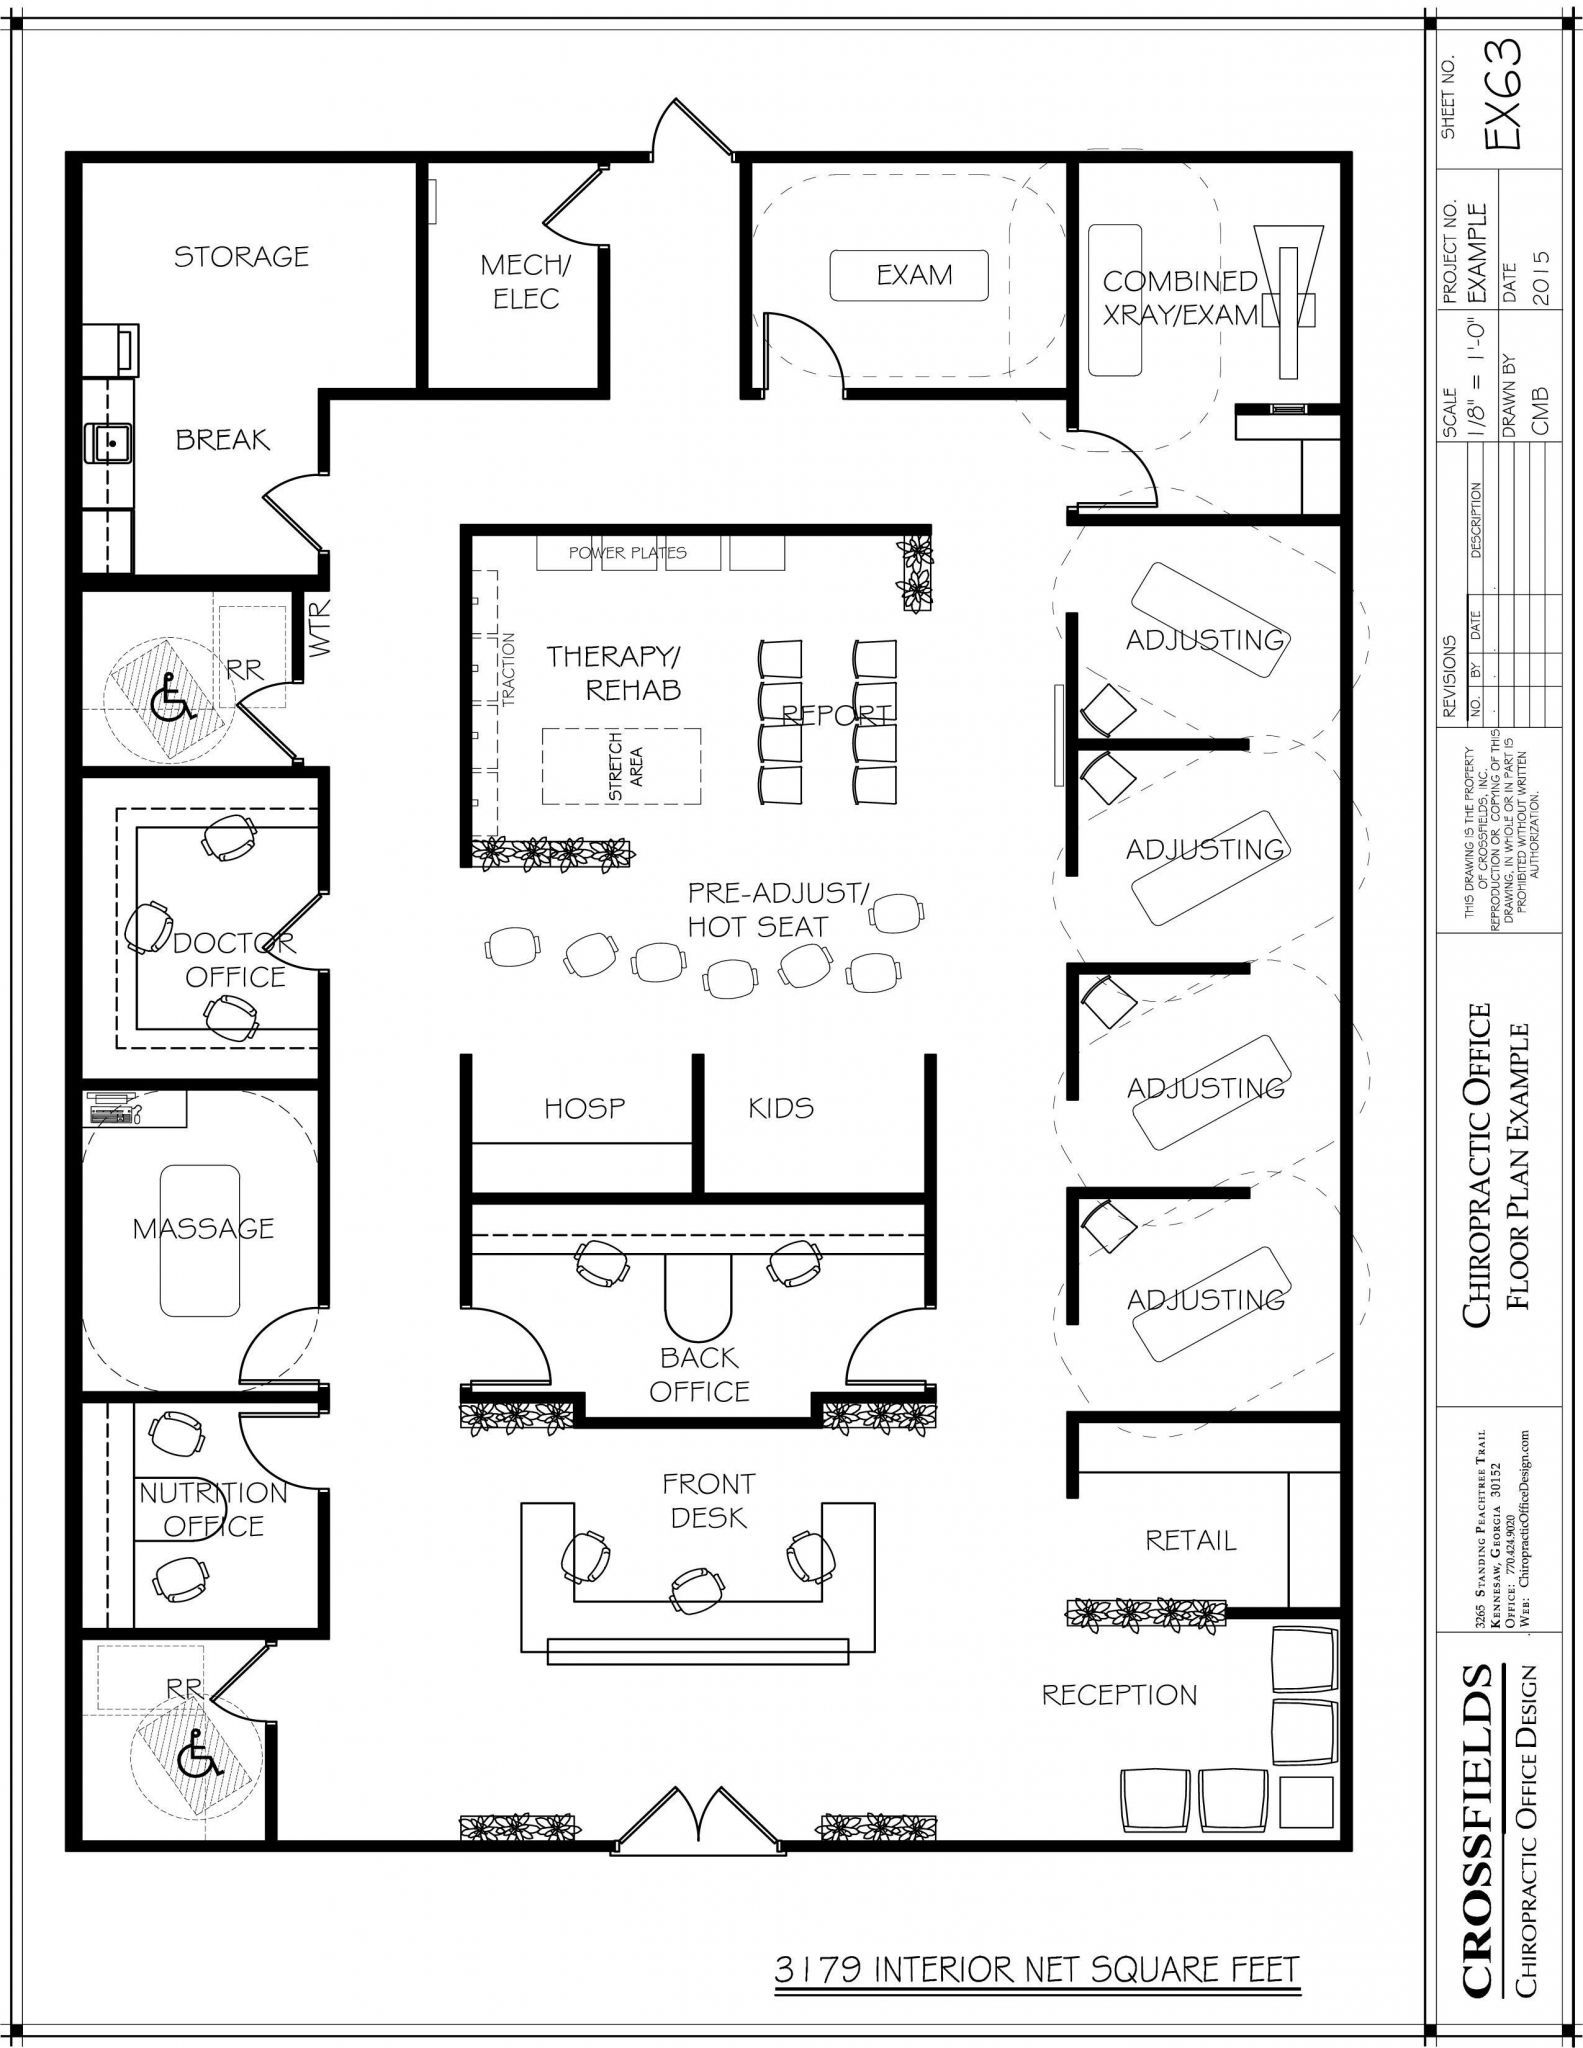 Medical Clinic Floor Plan Design Sample Unique